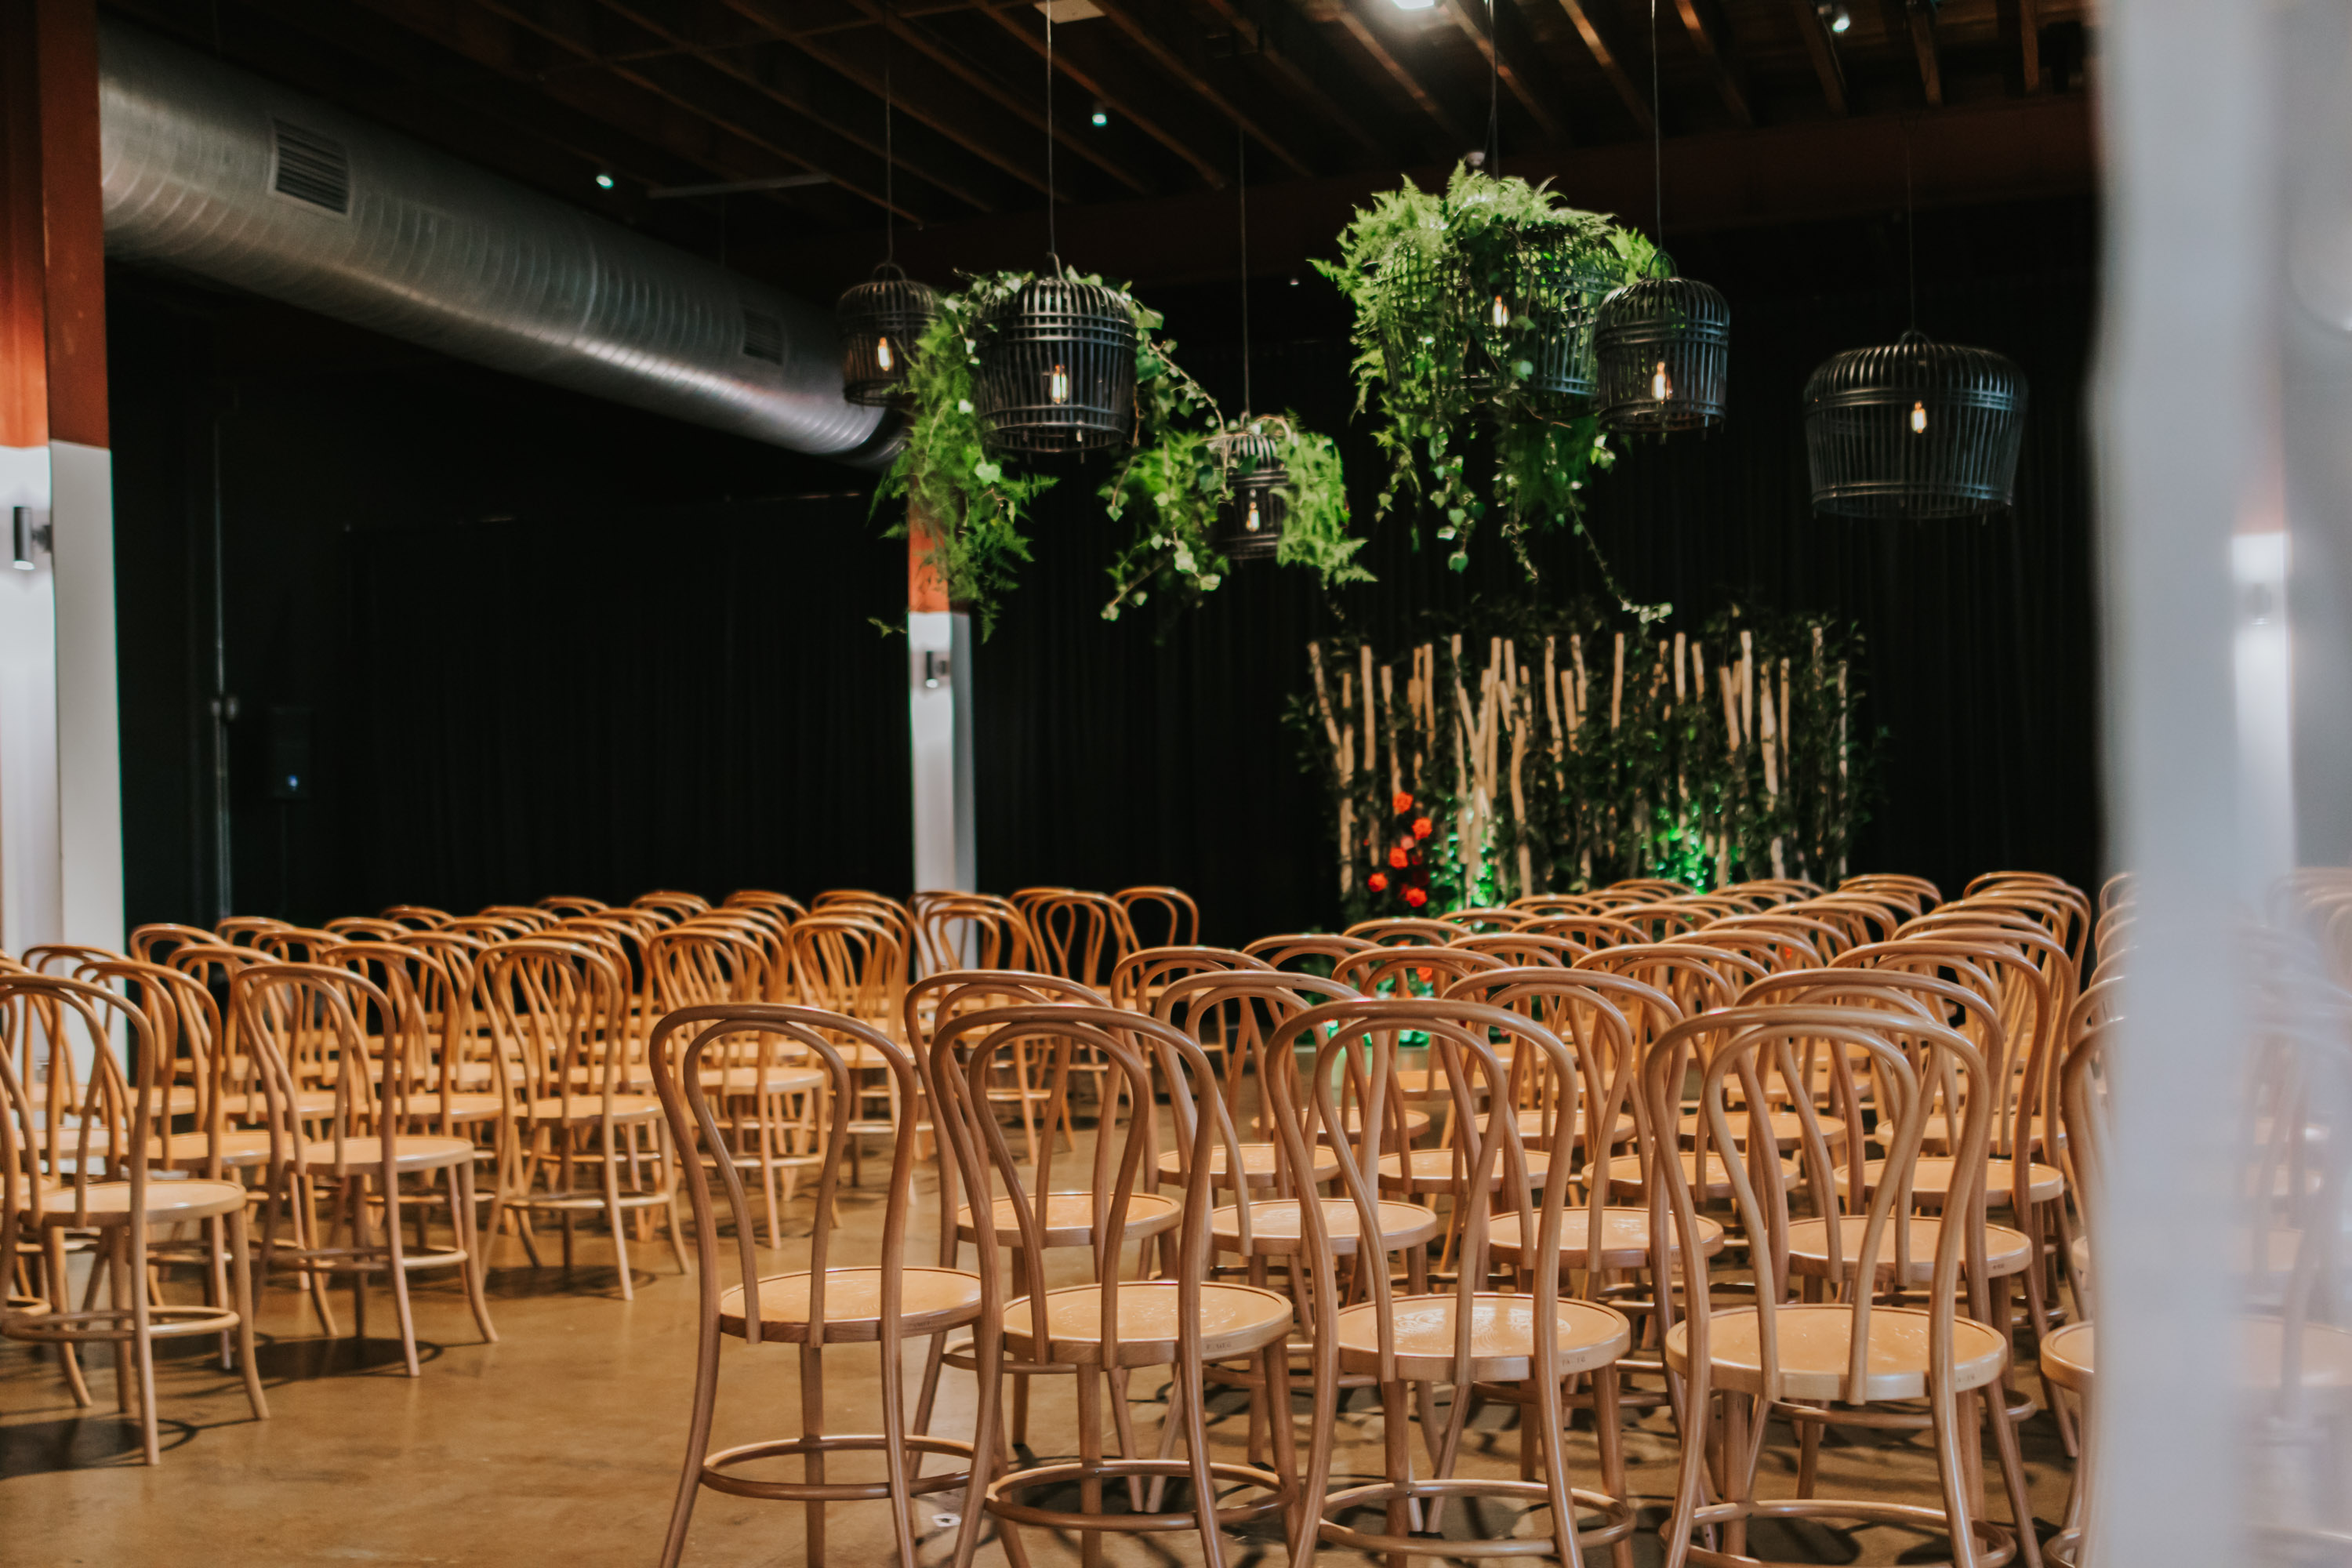 white+white weddings and events the wedding school emily and jack lightspace wedding greenery ceremony florals suspended hanging bentwood chairs venue